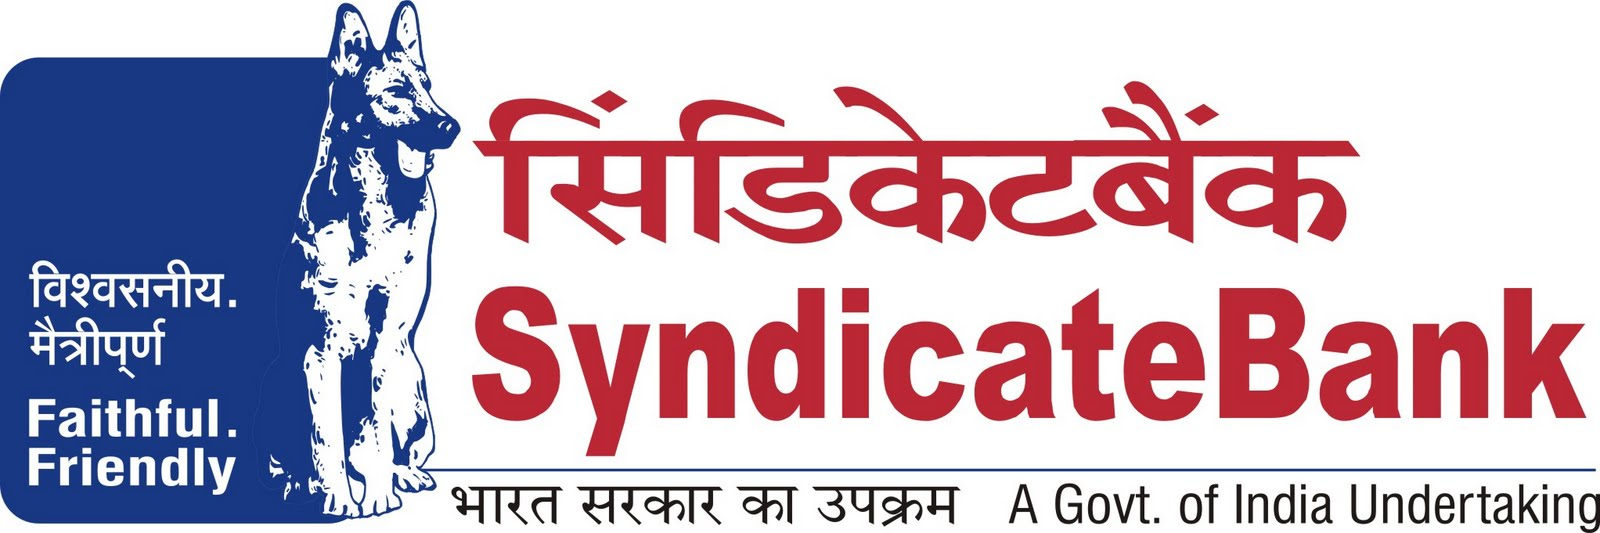 Syndicate bank online exam call letter 2017 18 pgdbf po 360 syndicate bank online exam call letter 2017 18 pgdbf po altavistaventures Choice Image